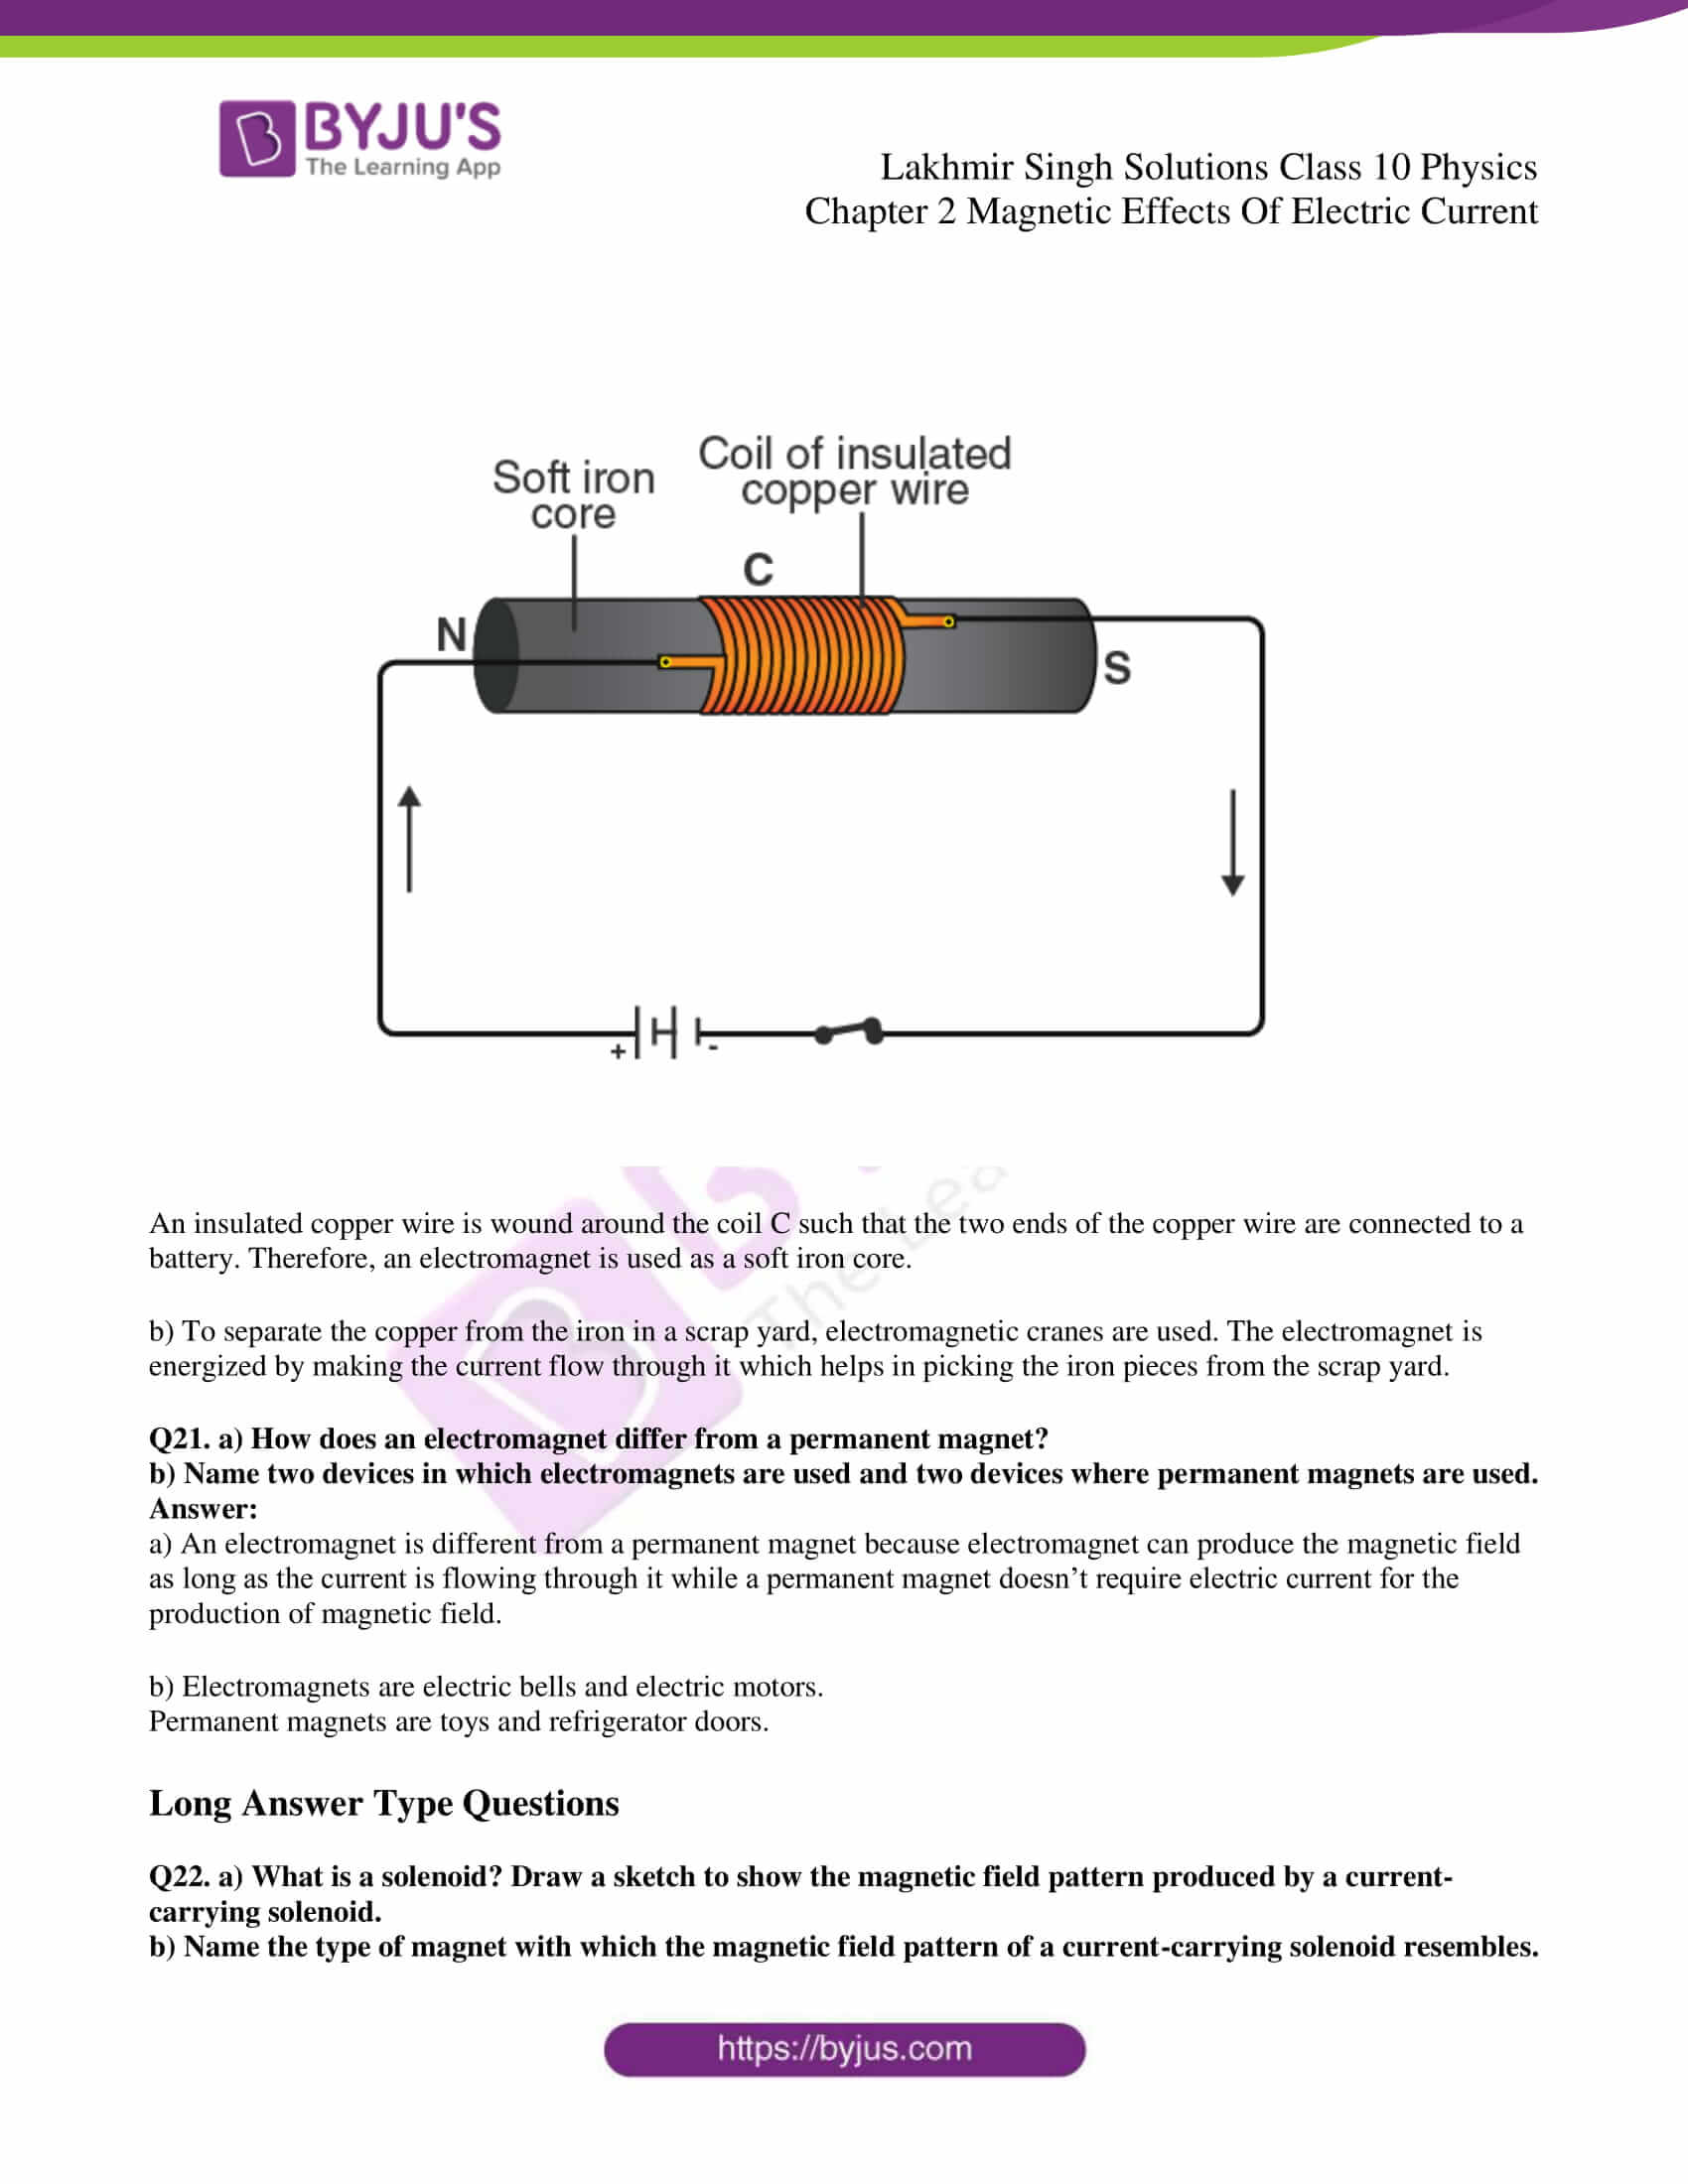 lakhmir singh sol class 10 physics chapter 2 12